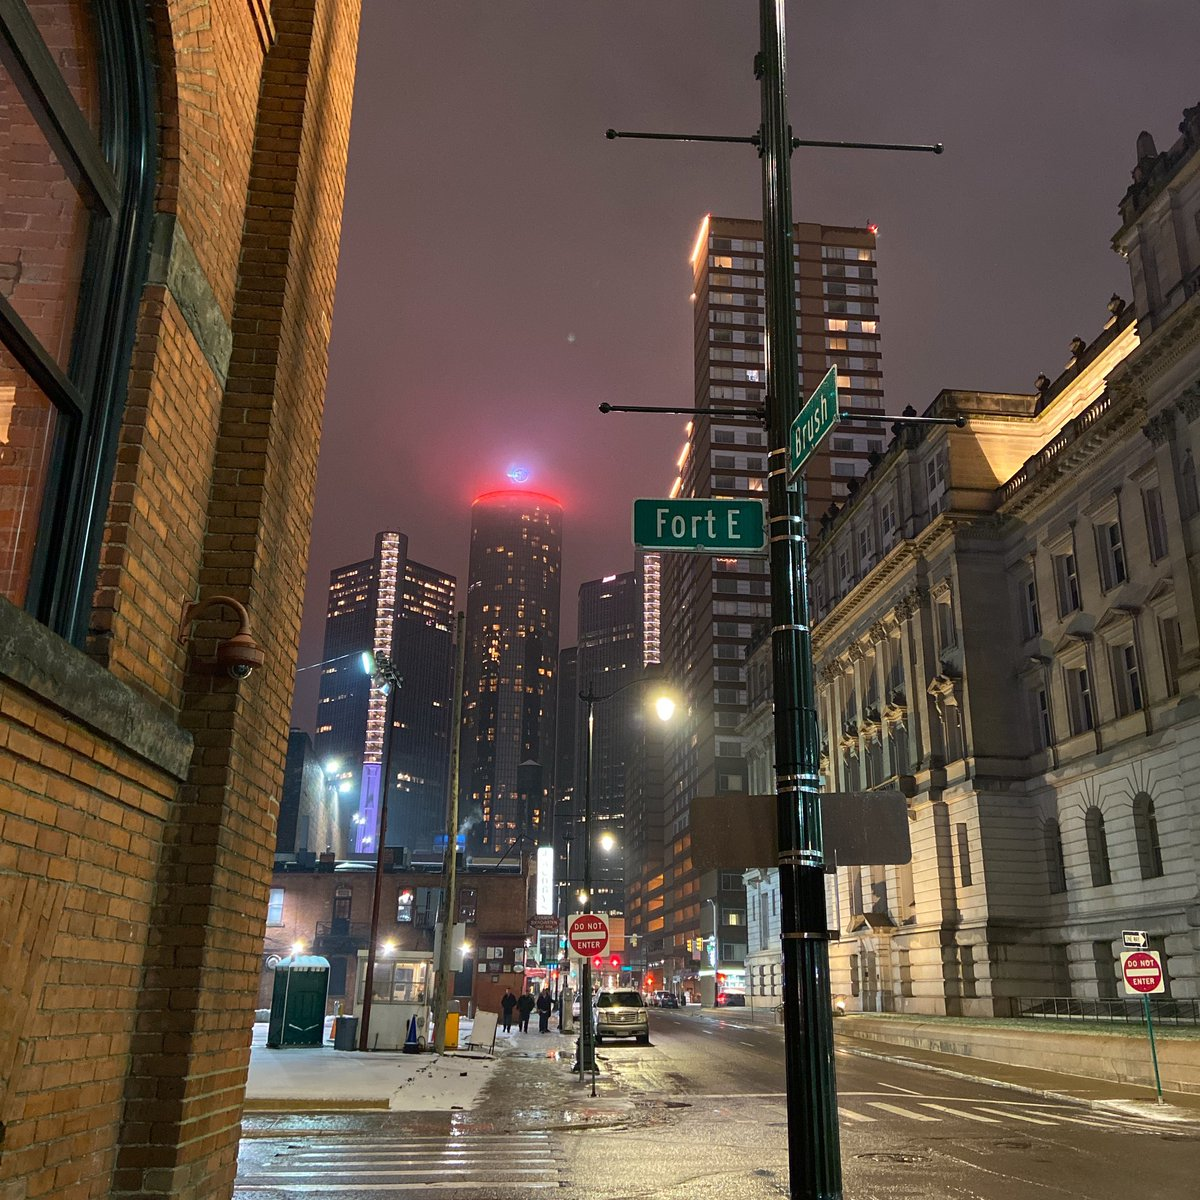 Beautiful #nightphoto I took in Downtown Detroit a few weeks ago. I can't wait to get back out there and enjoy the nights with more people out. #citylife #RETWEET if you  #NightPhotographypic.twitter.com/2j0DlyFrdB